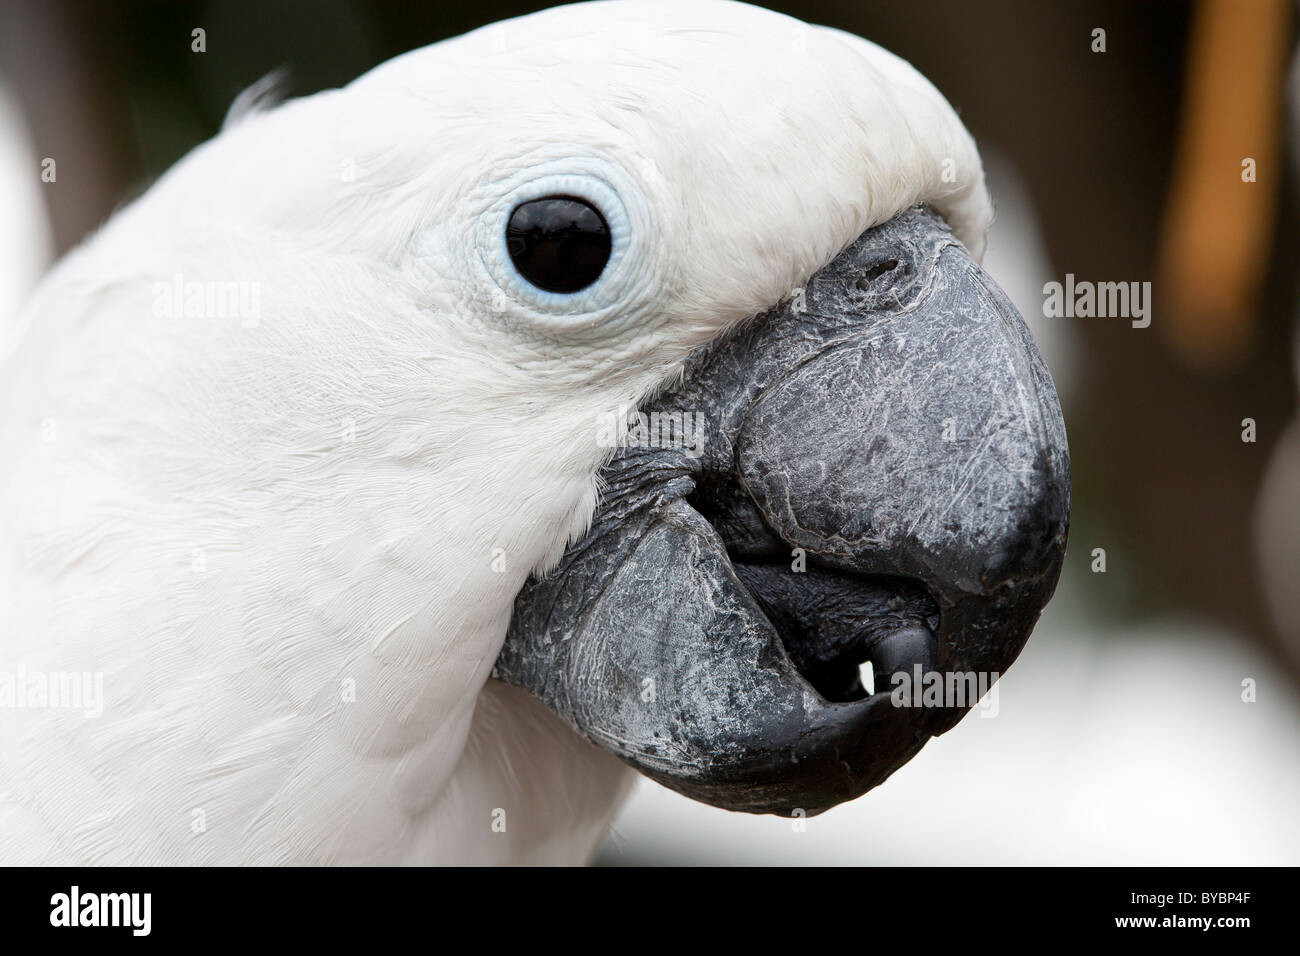 Daphne the Umbrella Cockatoo. This pet Cockatoo is a regular feature of the Kong Lung Company shopping center in - Stock Image